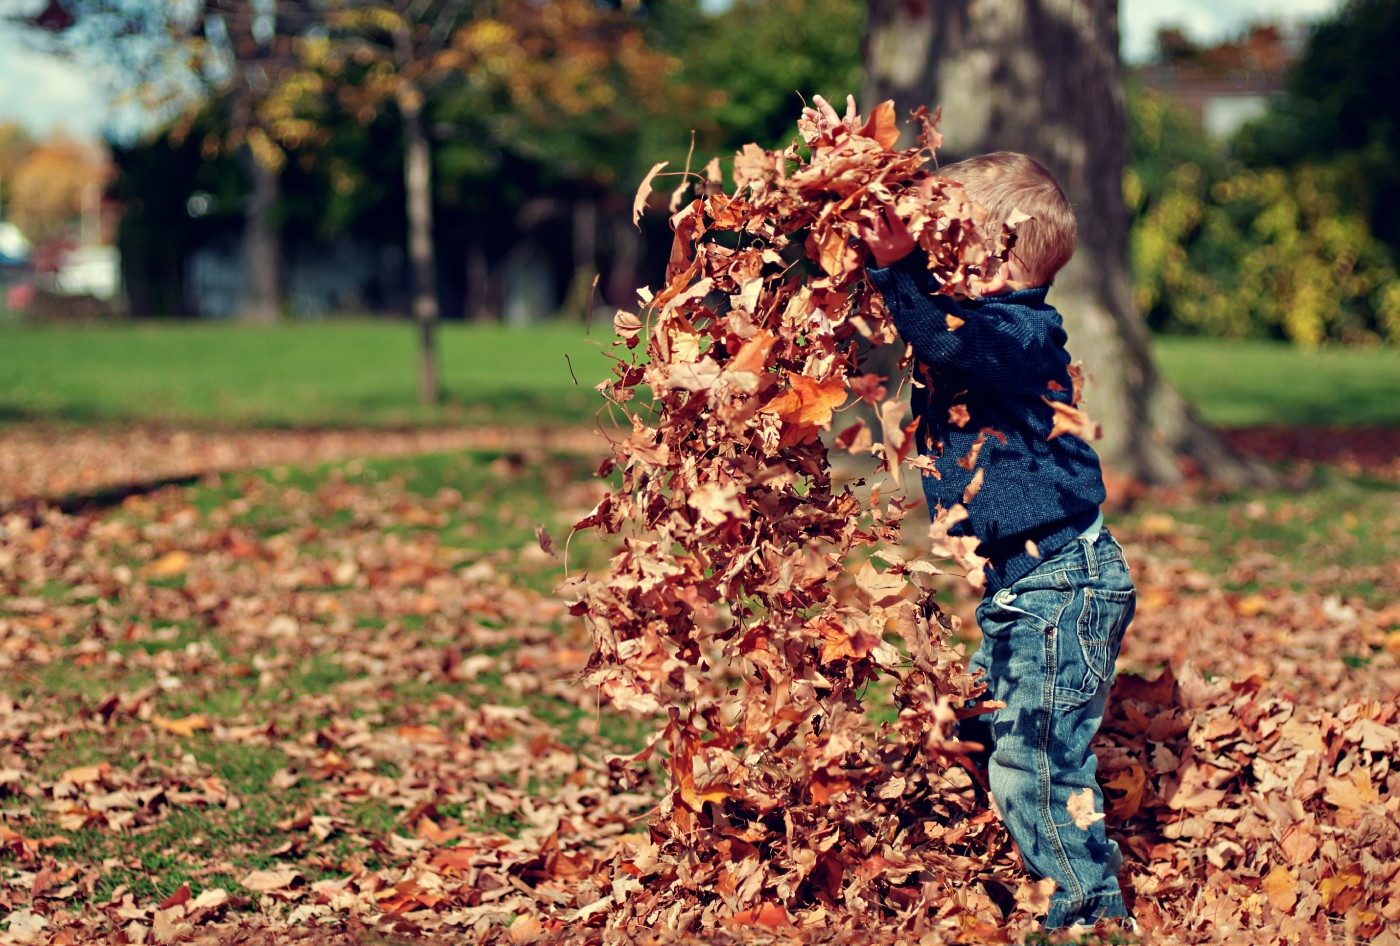 Little boy playing in a pile of leaves